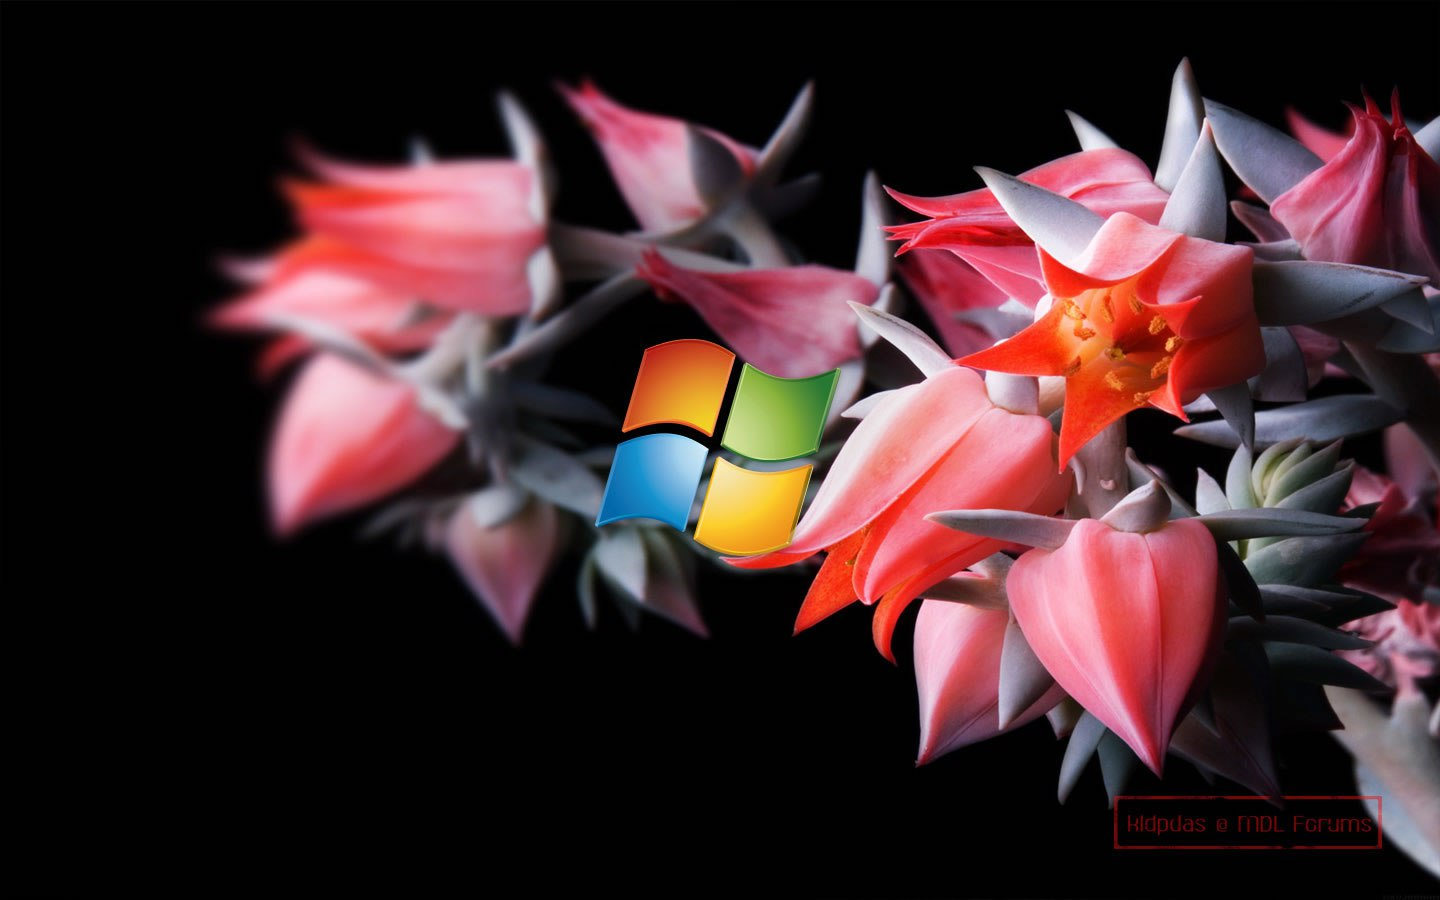 Windows 8 50 Best Wallpapers Technology News HowTo 1440x900